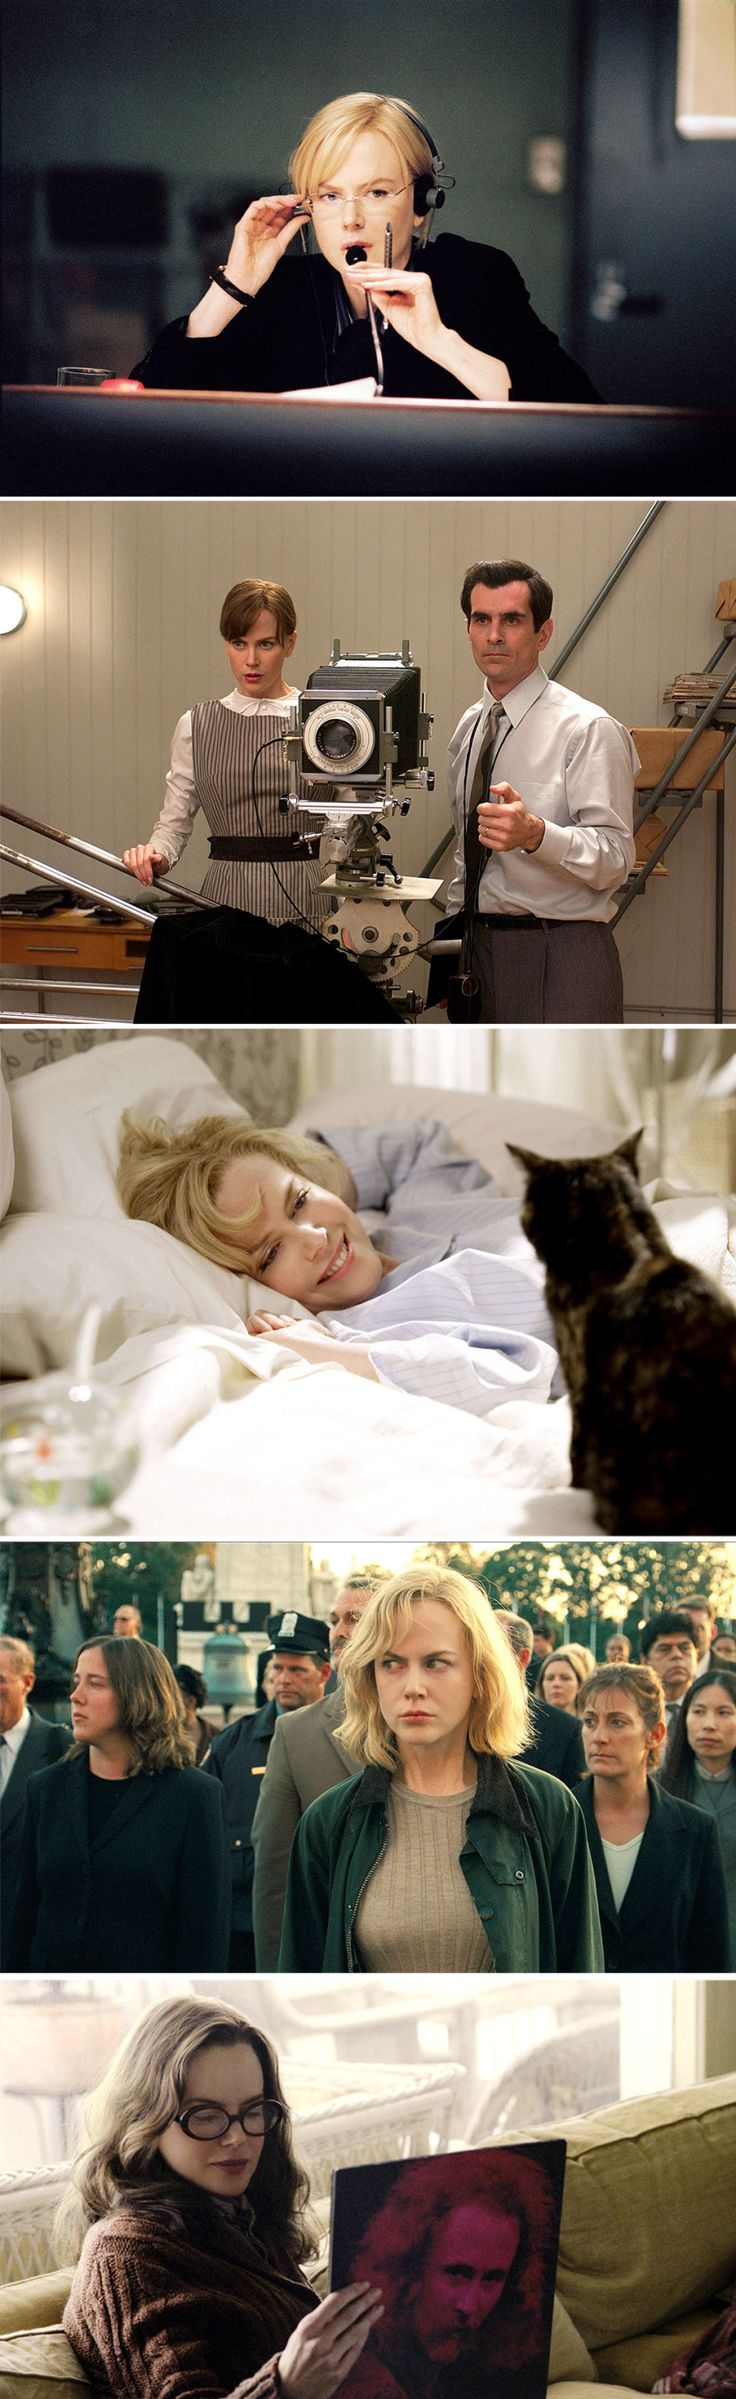 From top: The Interpreter (2005) Fur (2006) Bewitched (2005) The Invasion (2007) Margot at the Wedding (2007).